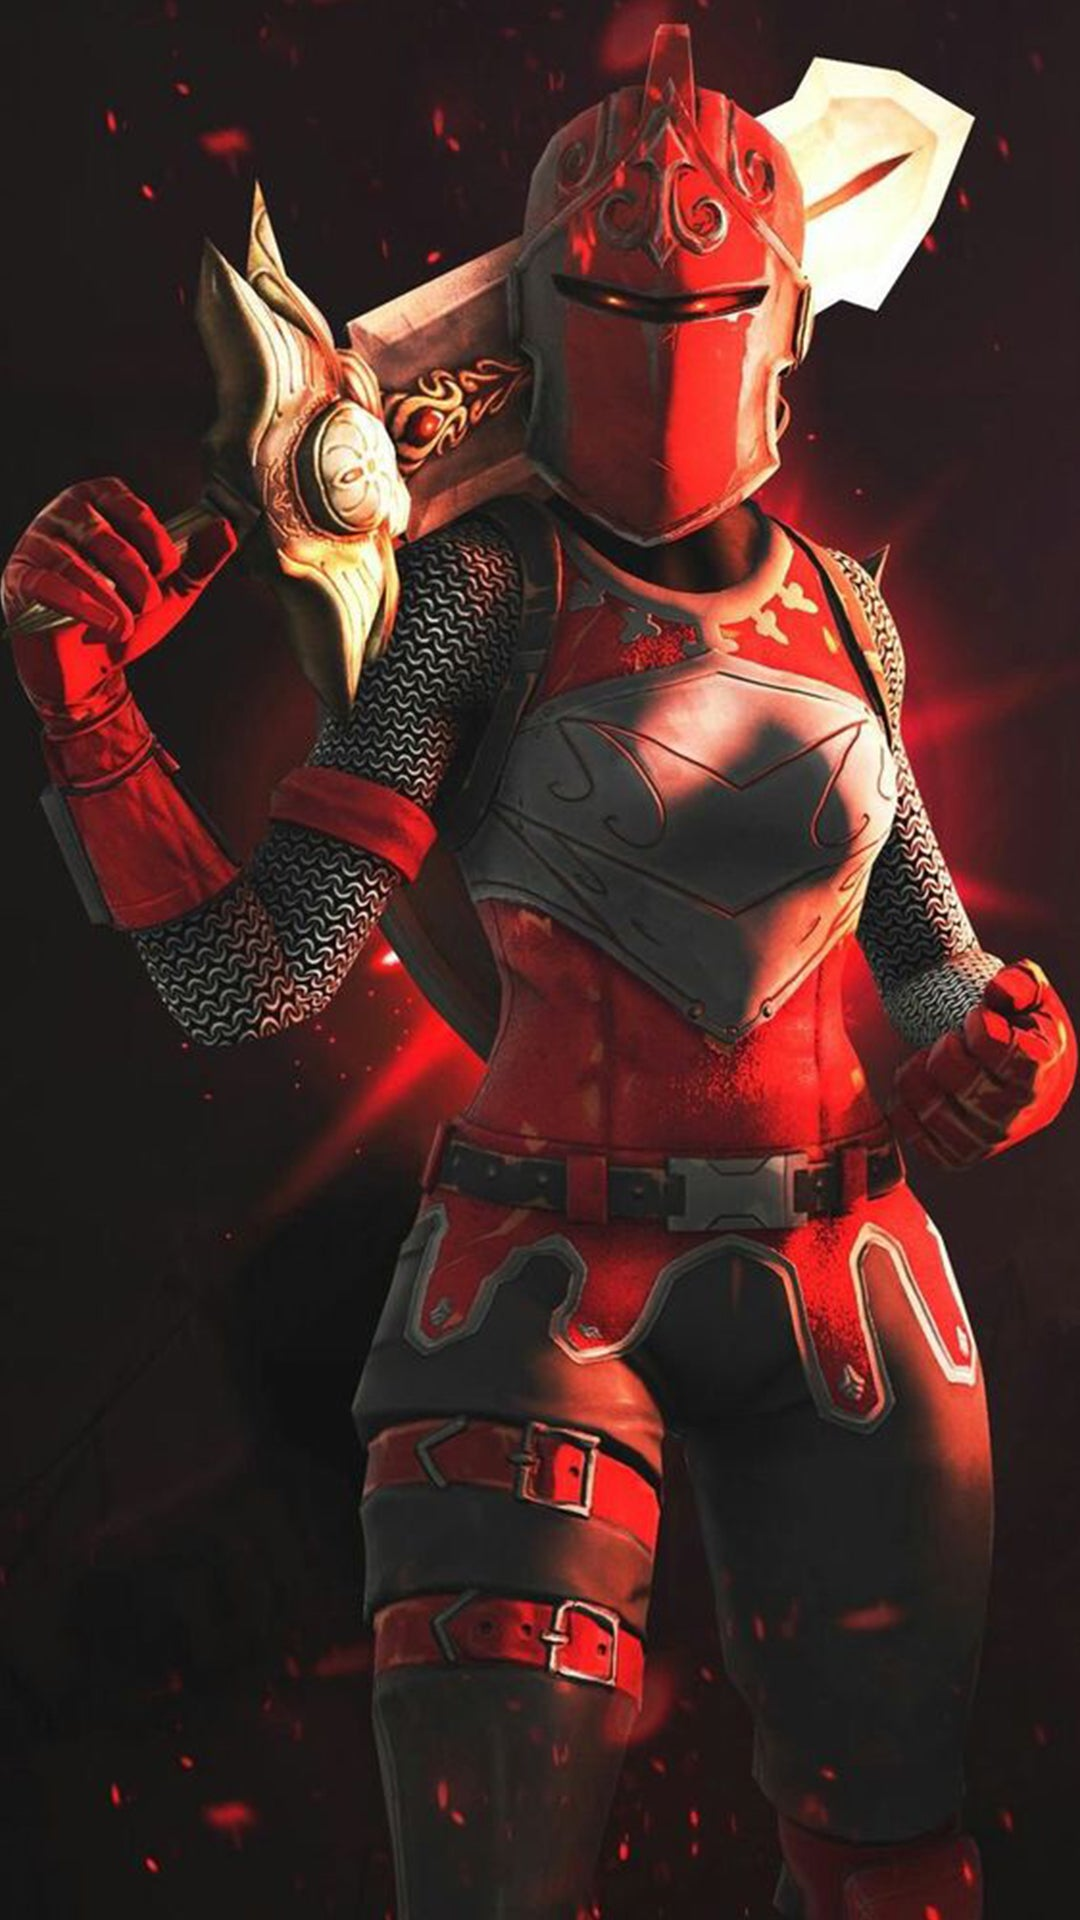 Cool Red Knight Phone Wallpaper Phone 2019 Fortnite